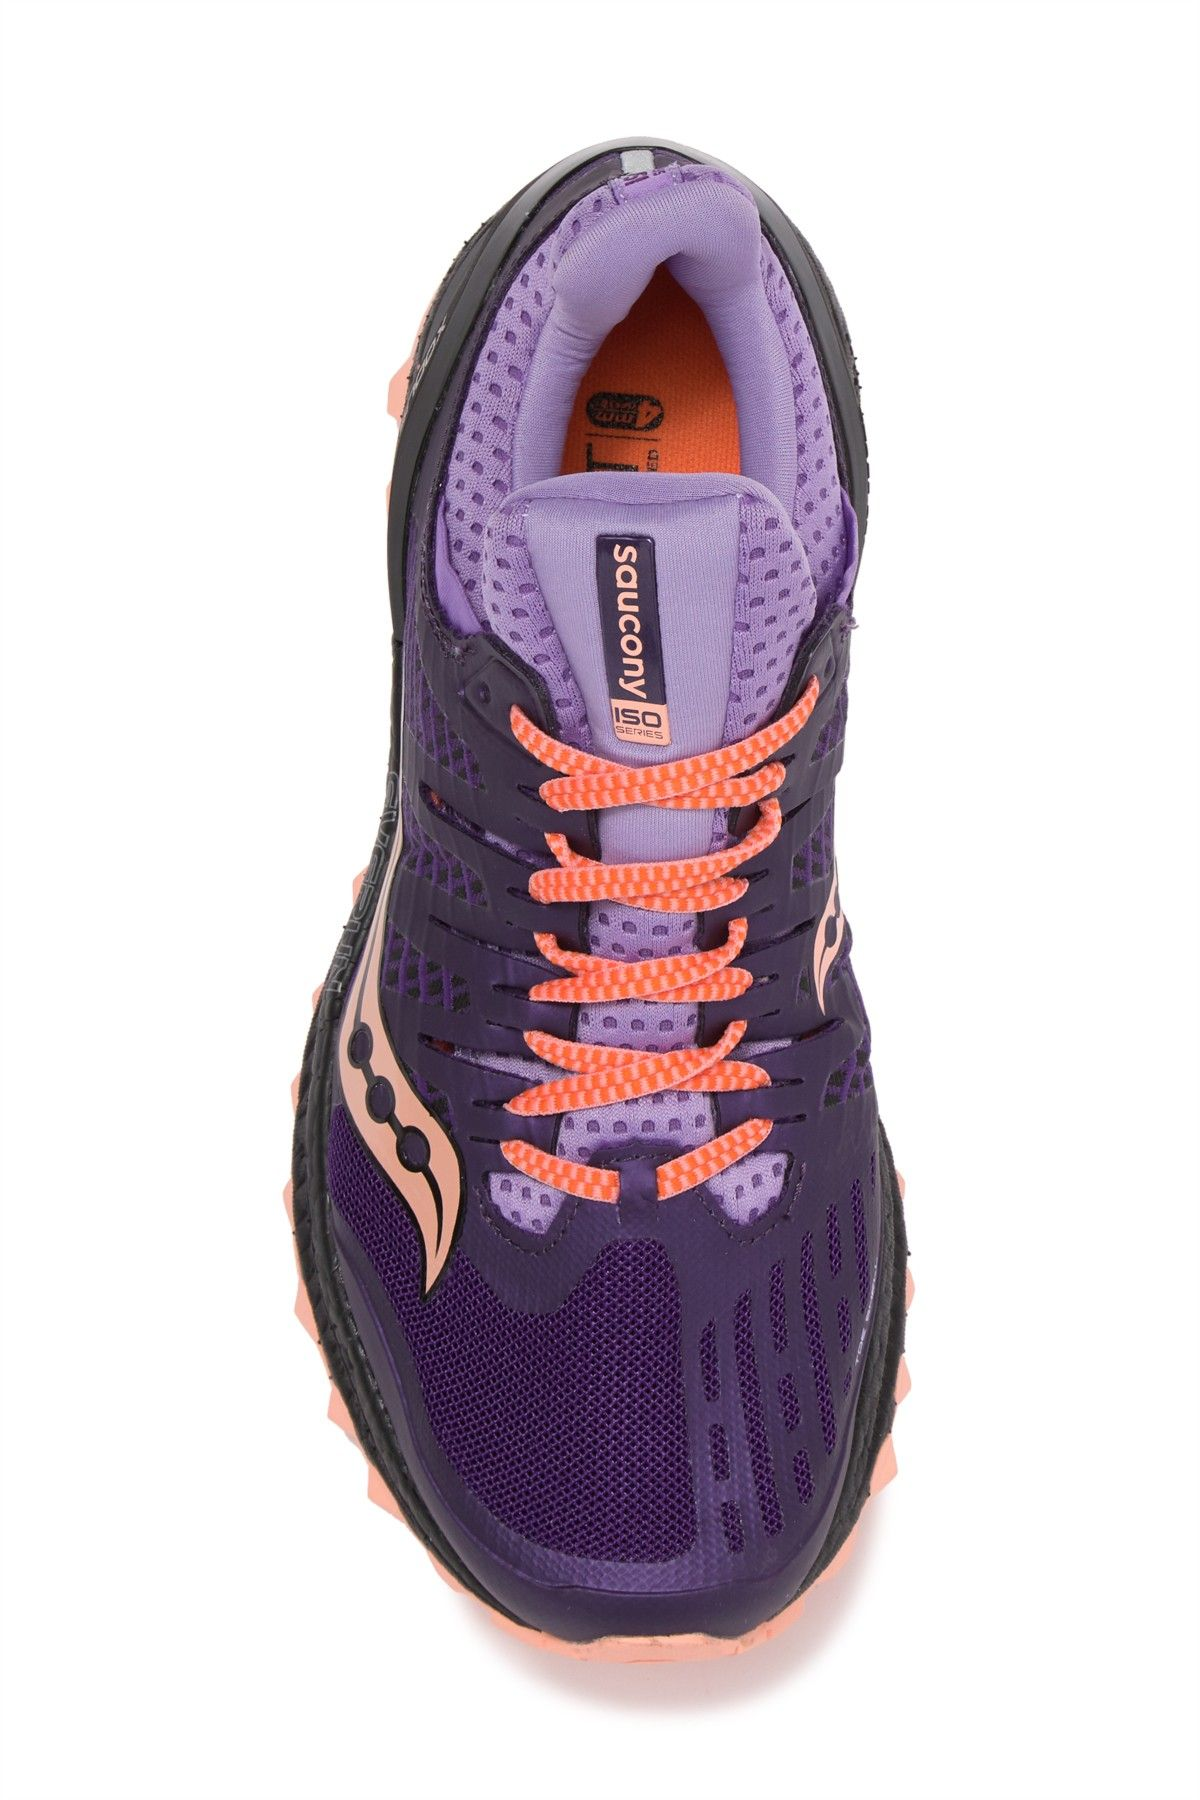 Xodus ISO 3 Running Shoe by Saucony on nordstrom_rack in